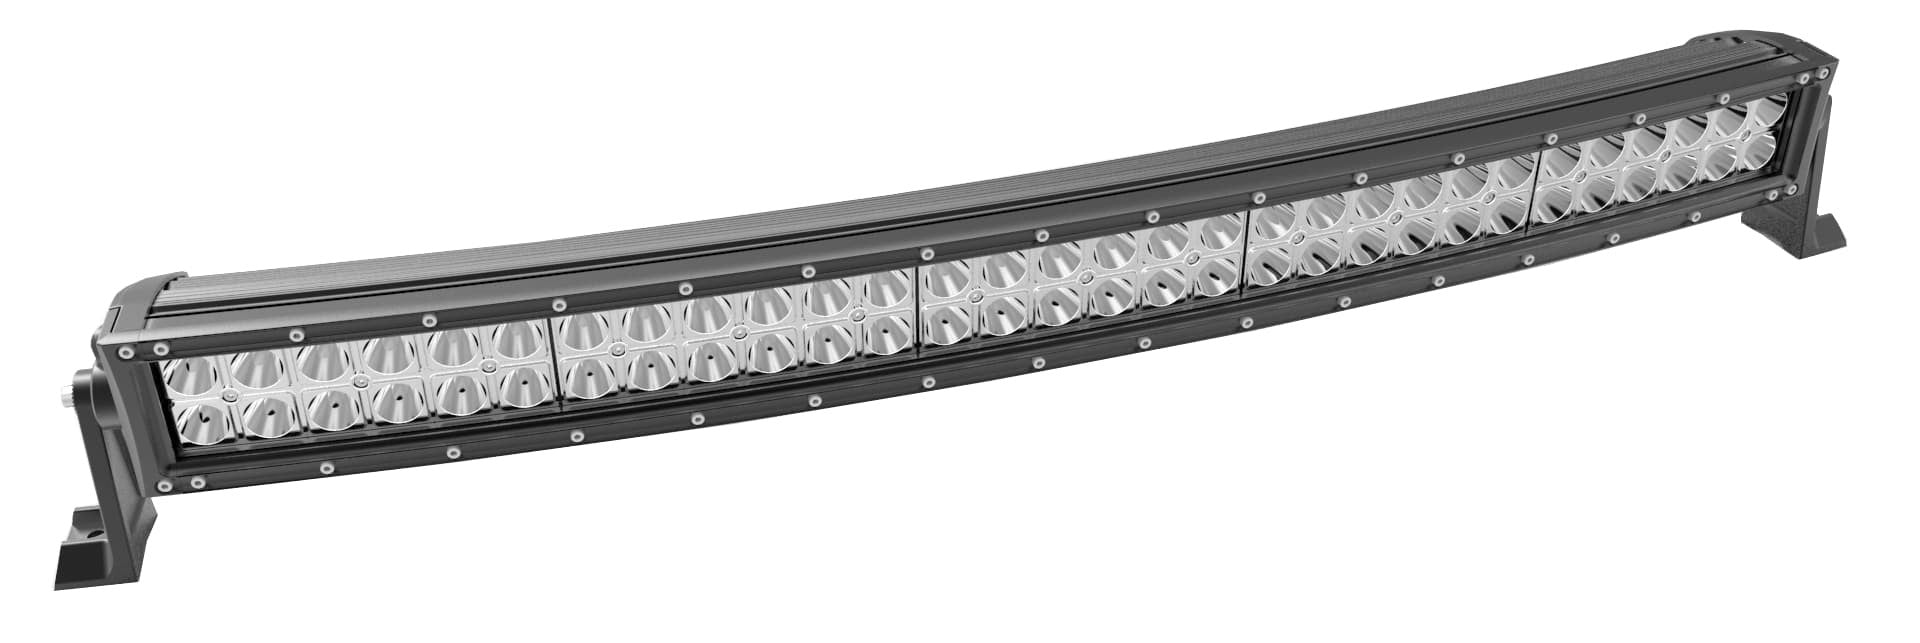 Eclipse curved 400w 40 dual row xtreme led light bar aloadofball Gallery